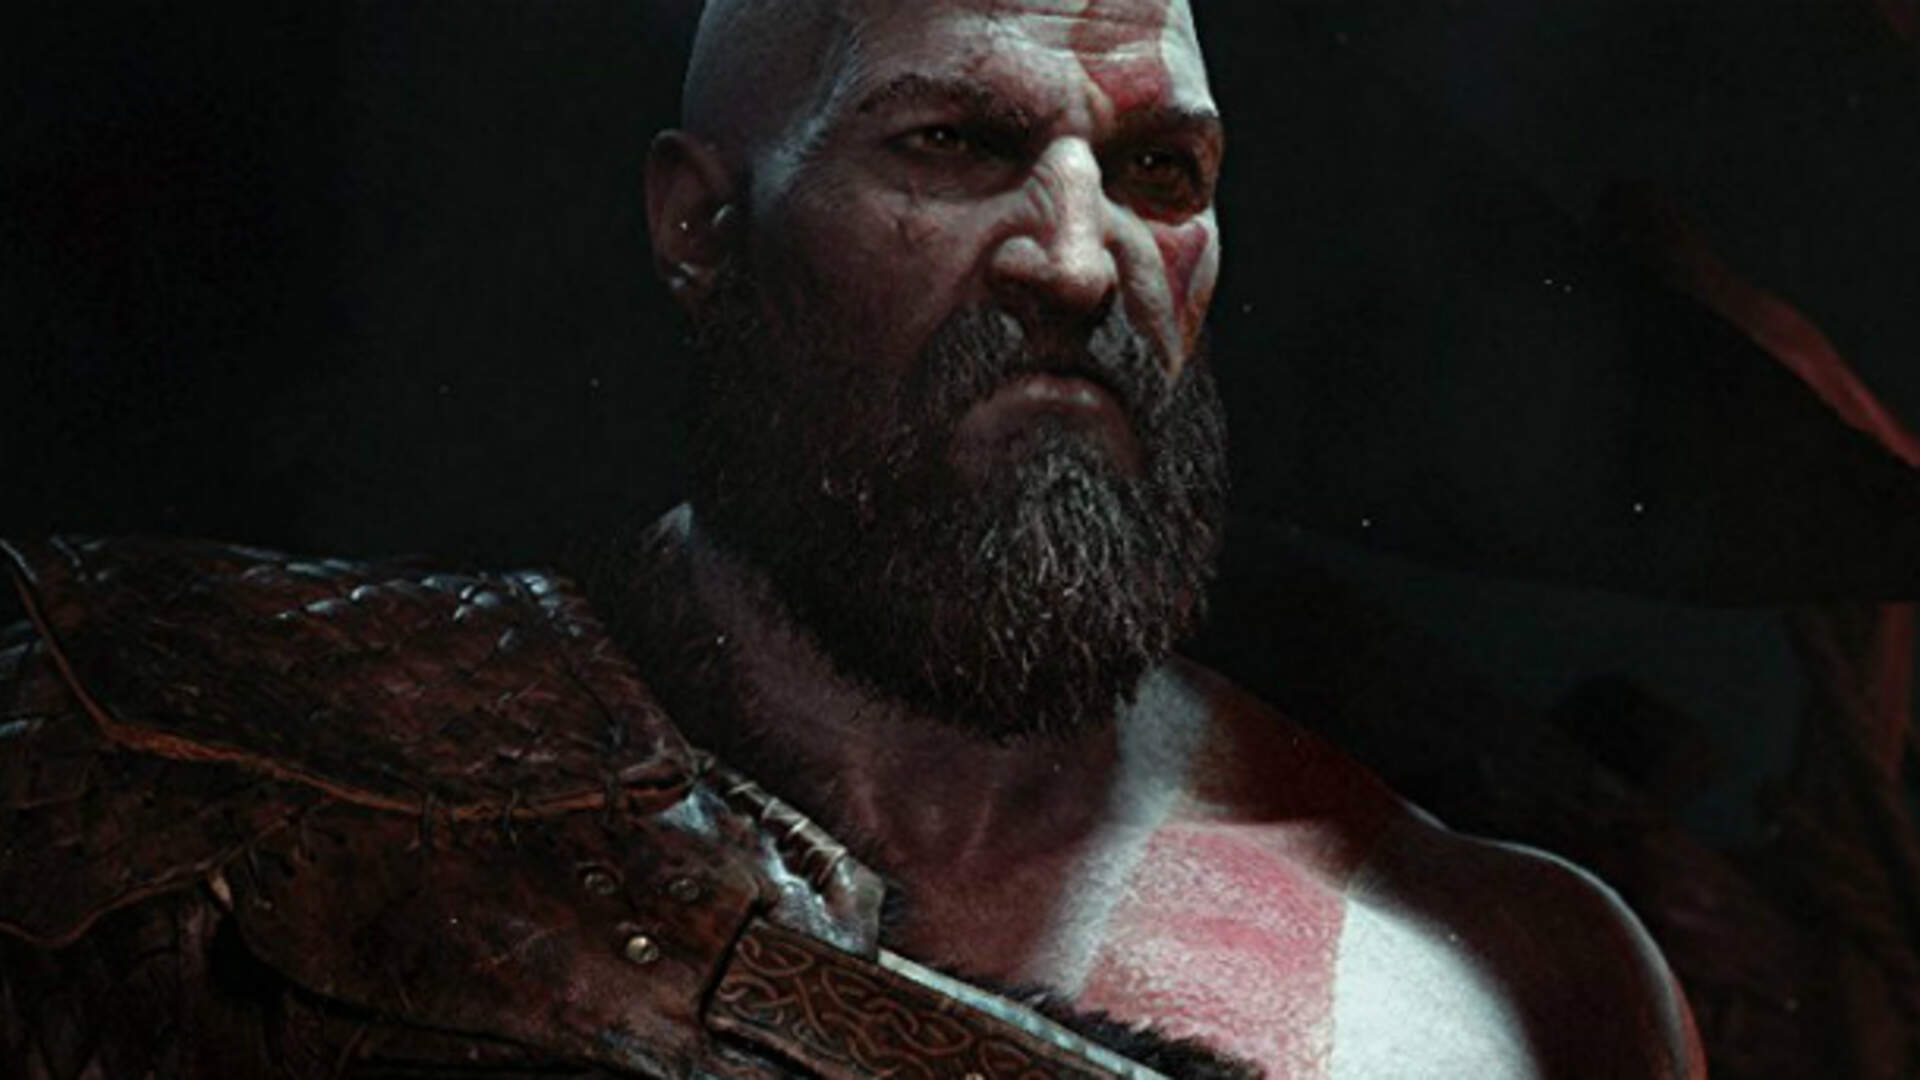 God of War Photo Mode Shows Kratos can be Happy, Even if His Smile is Horrifying